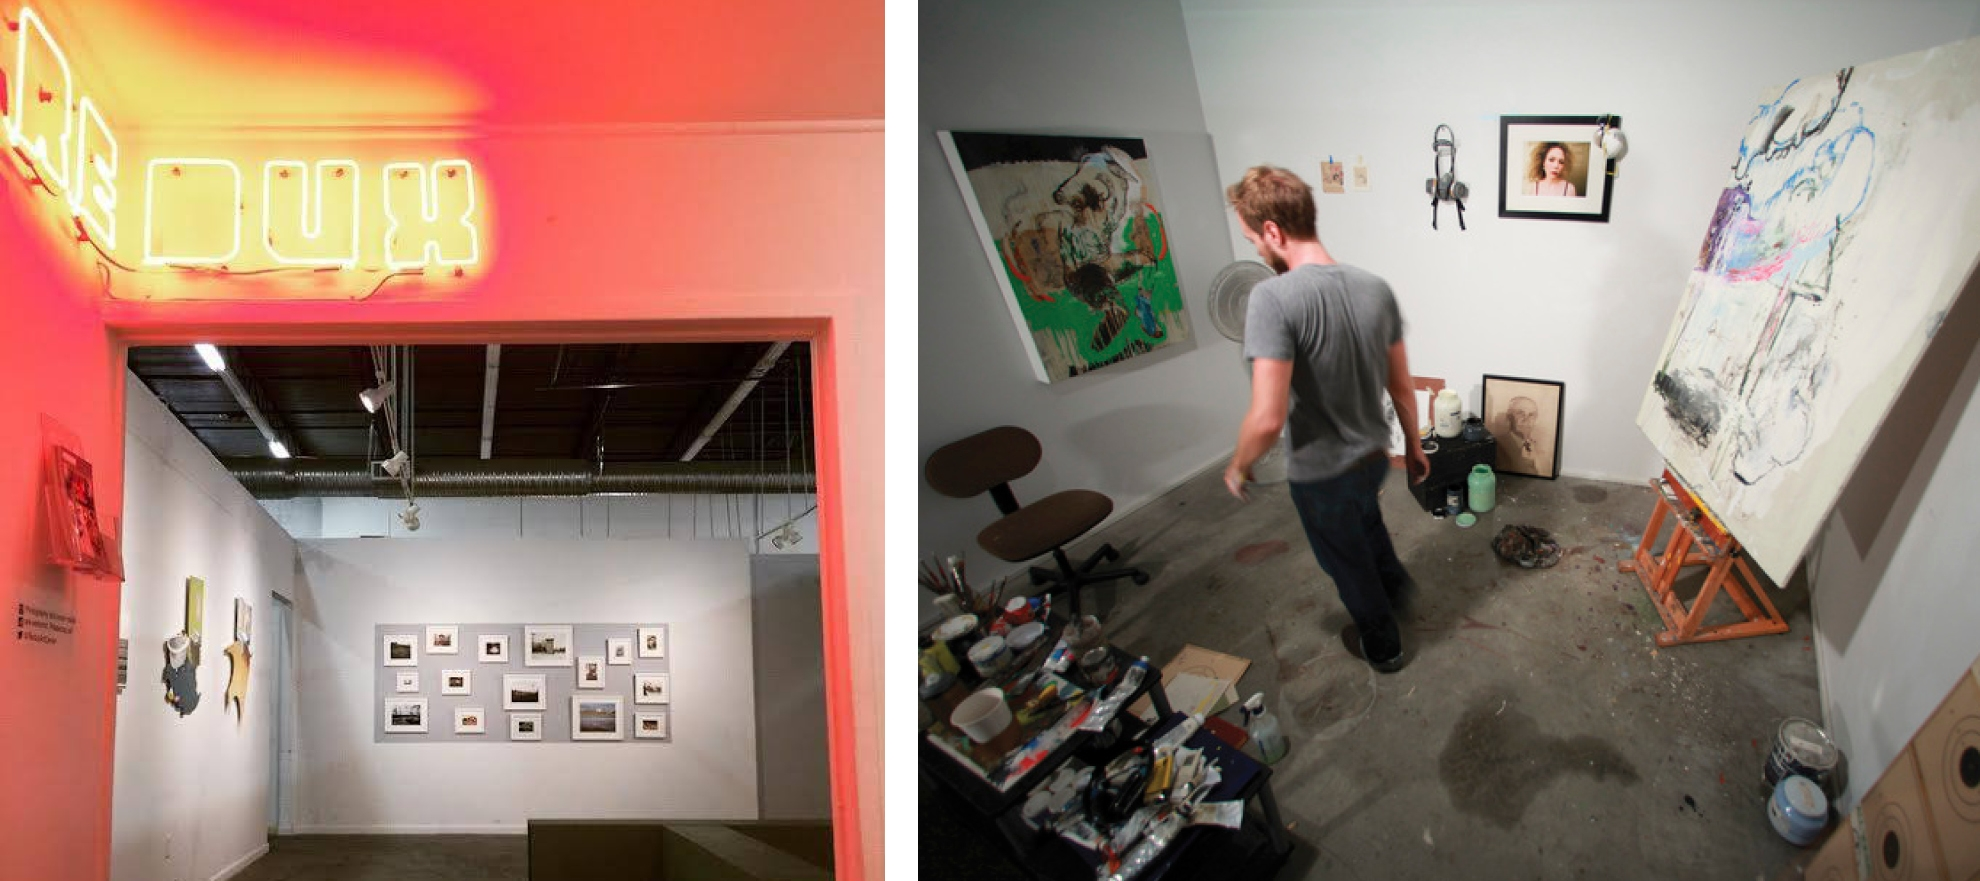 The Redux gallery and private studio example (shown artist is Tim Hussey)